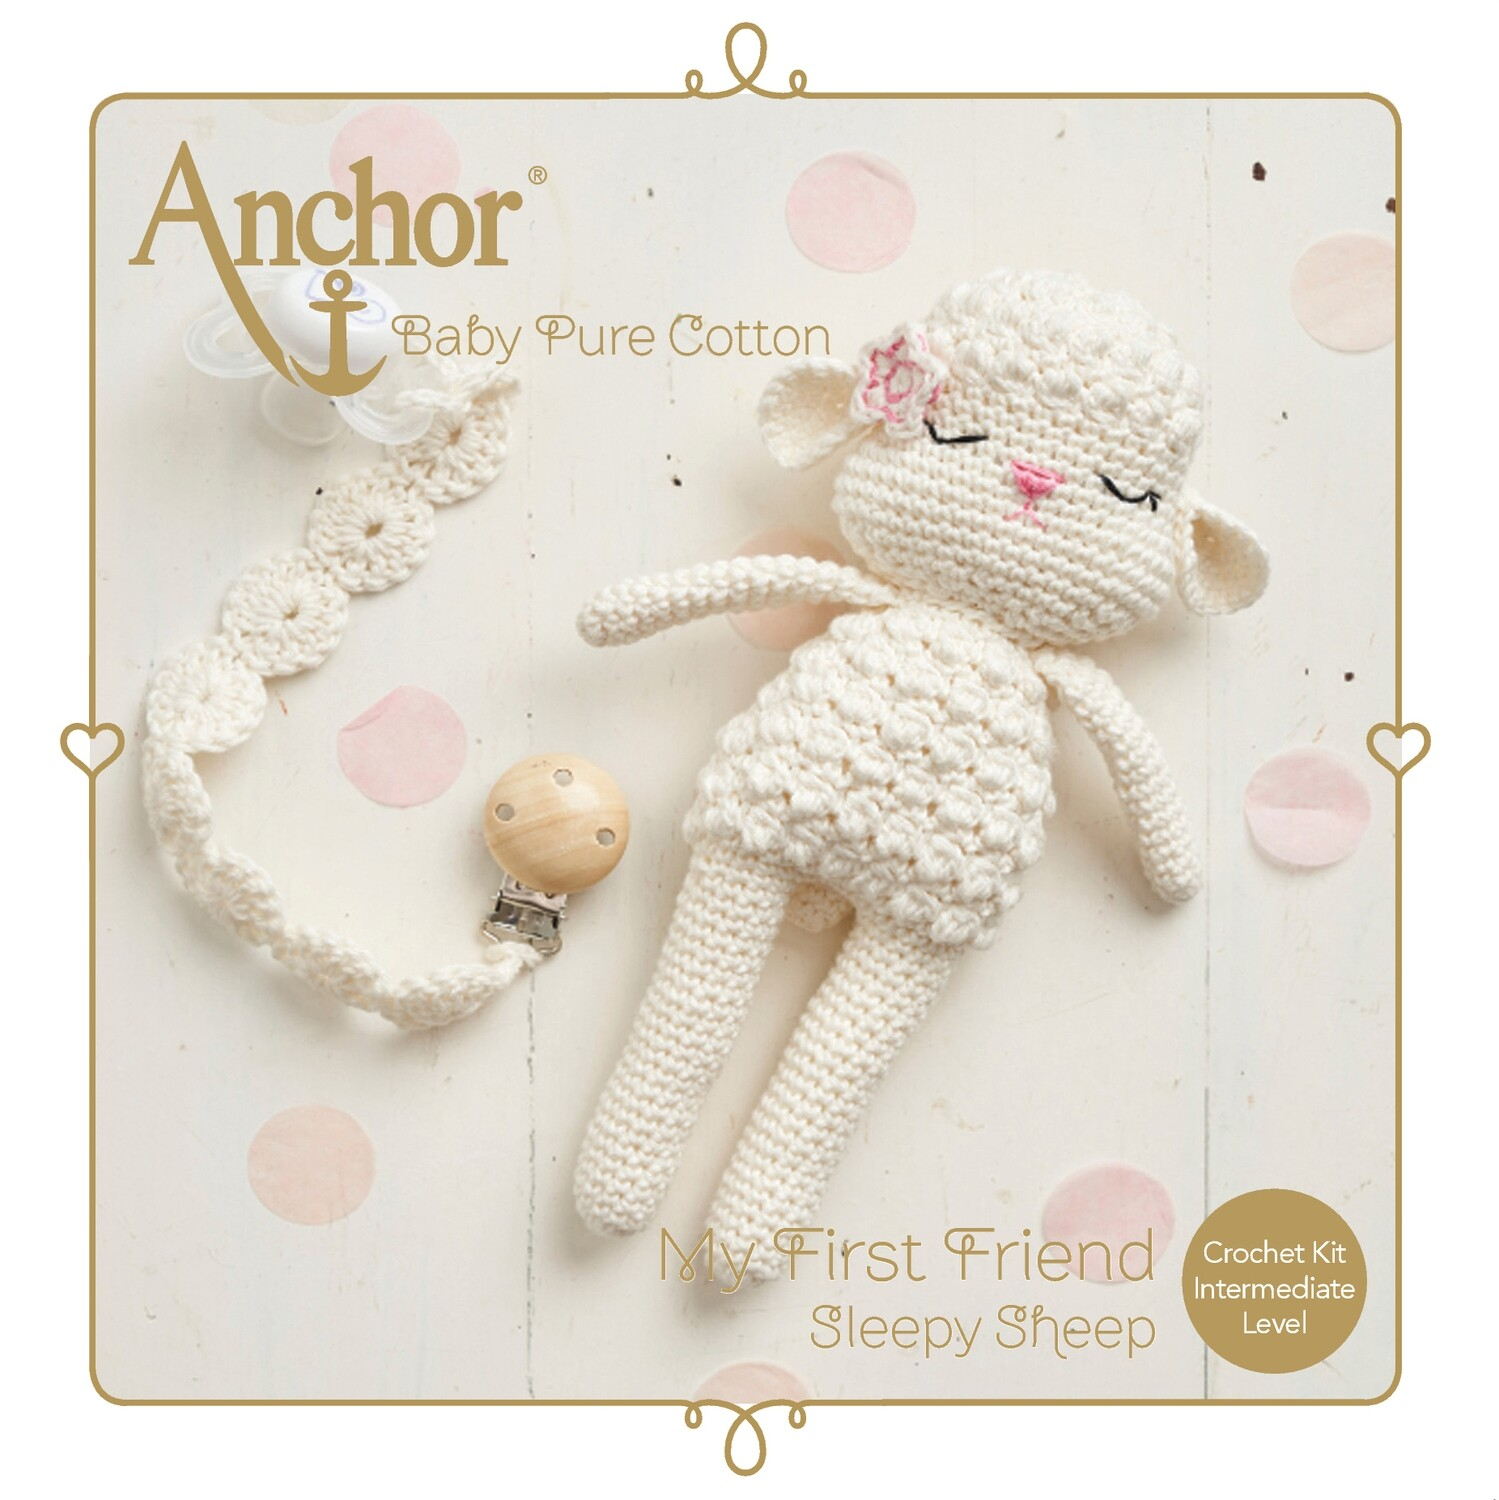 Crochet Kit Pure Cotton Sleepy Sheep